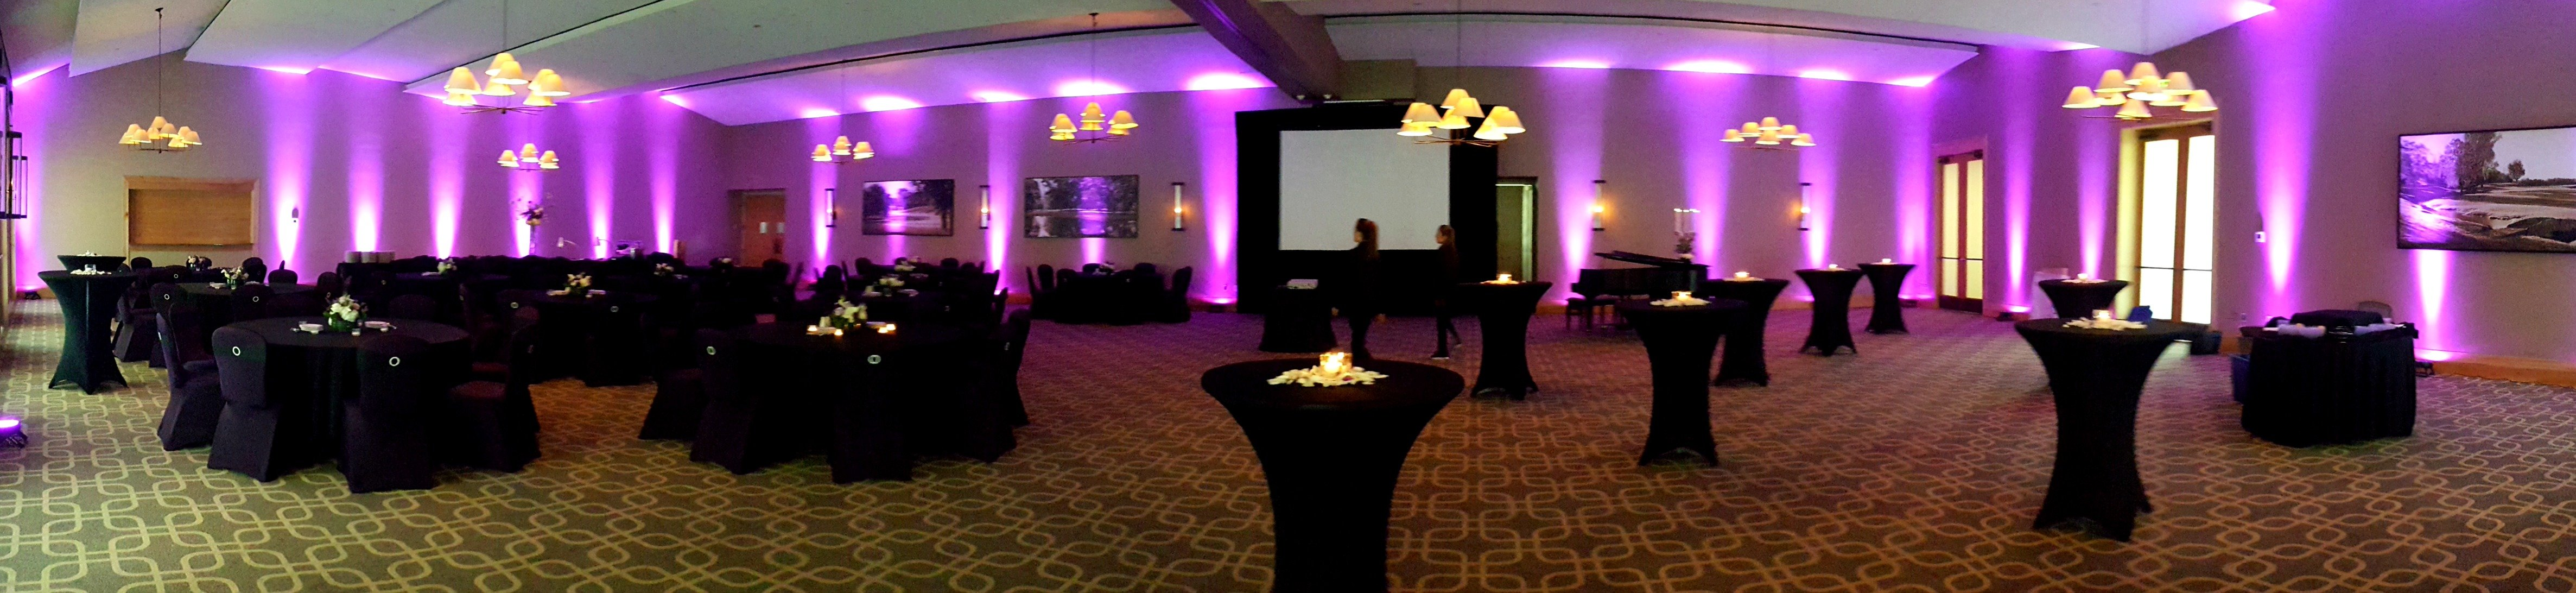 Dramatic purple uplighting set the mood in the ballroom at Hazeltine National Golf Club for a fundraising gala